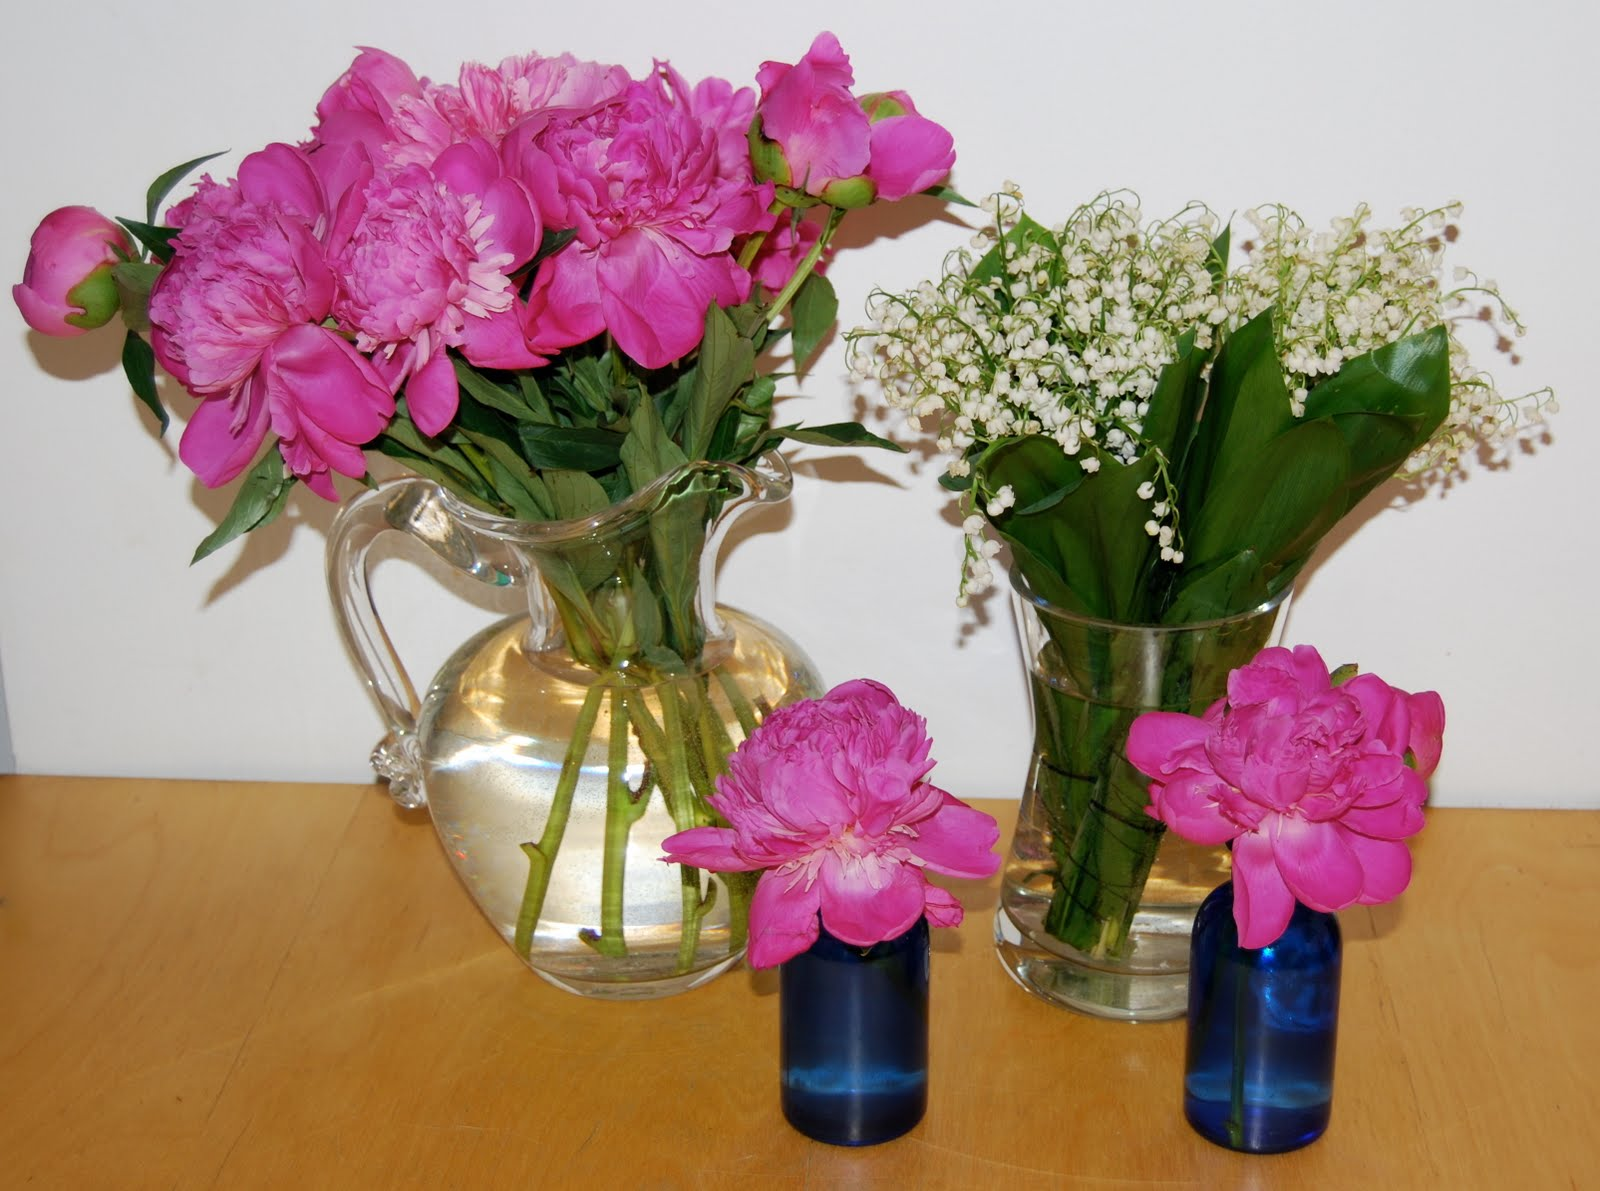 Flower vase pronunciation - From The Dacha To The Sidewalk To My Table